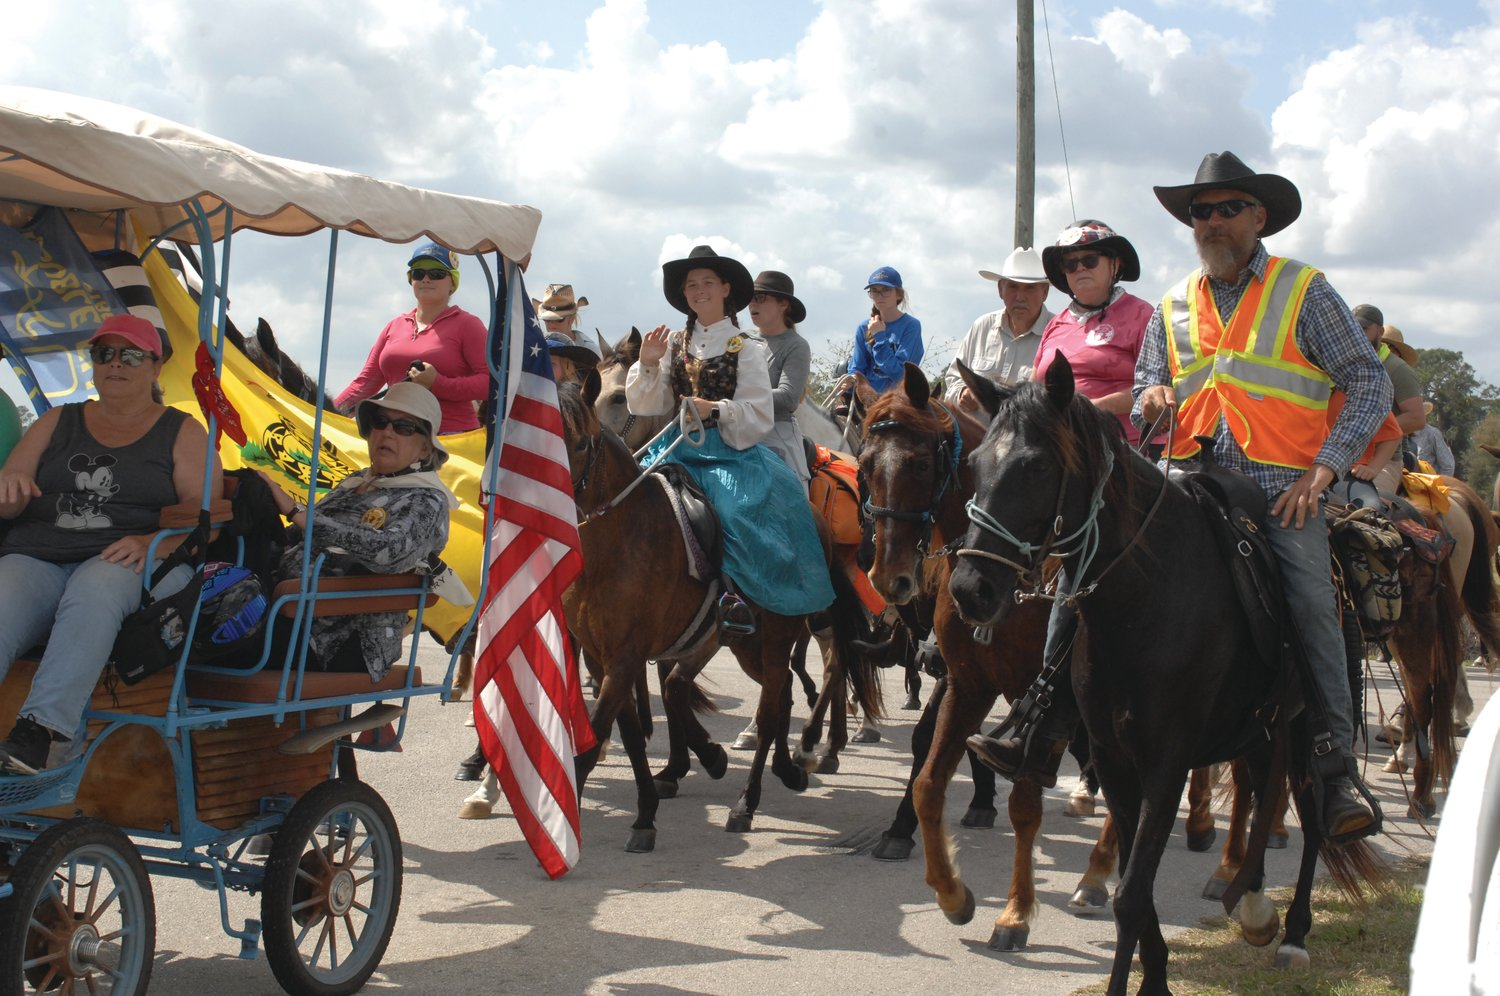 The annual Cracker Trail ride includes those on horseback and some in wagons or buggies. They ride the old Cracker Trail which was once the dry route across the state to take cattle to market.